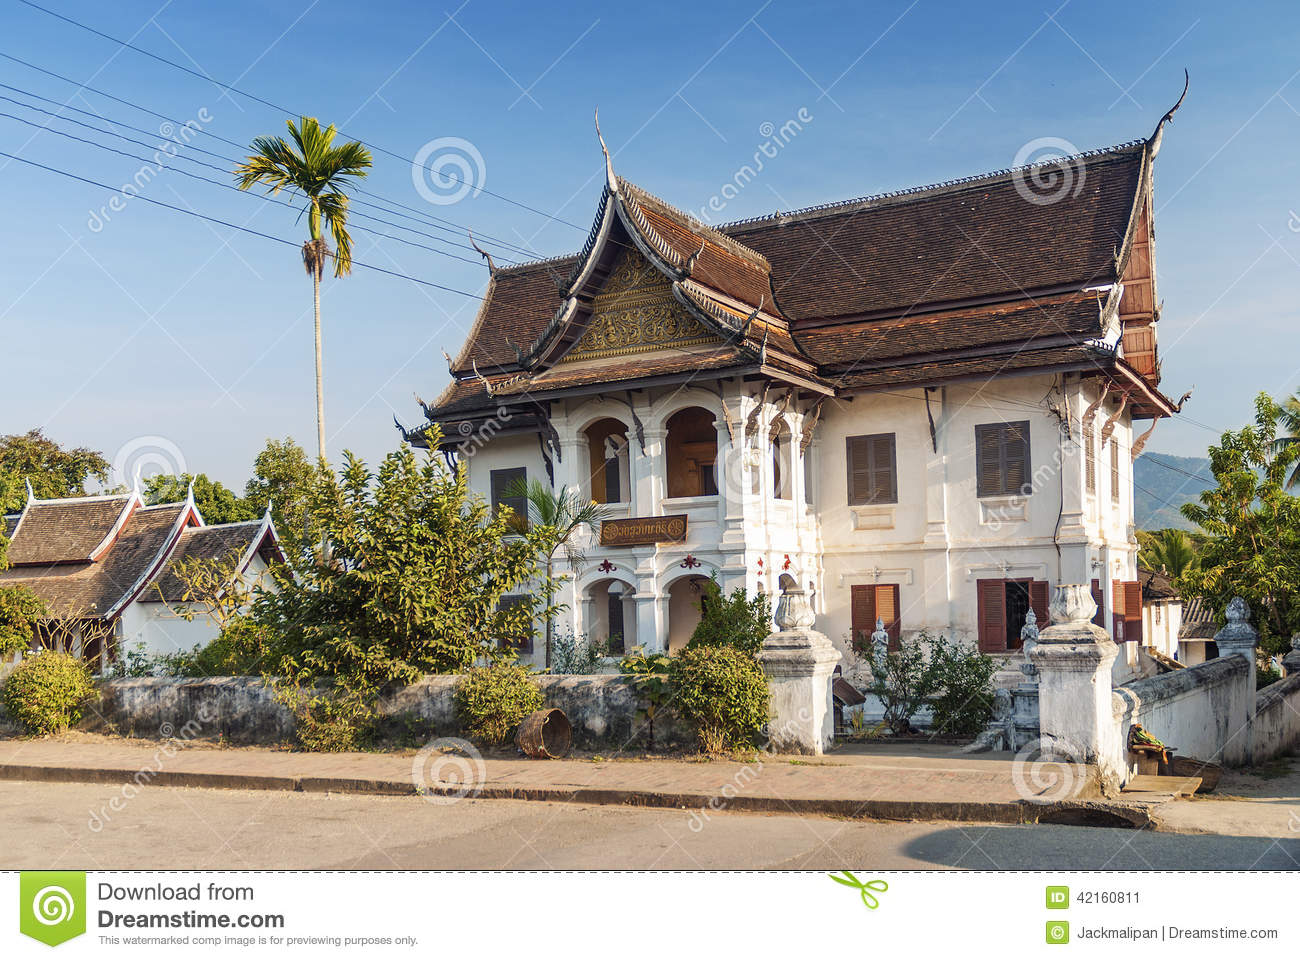 Colonial House In Luang Prabang In Laos Stock Image  Image 42160811